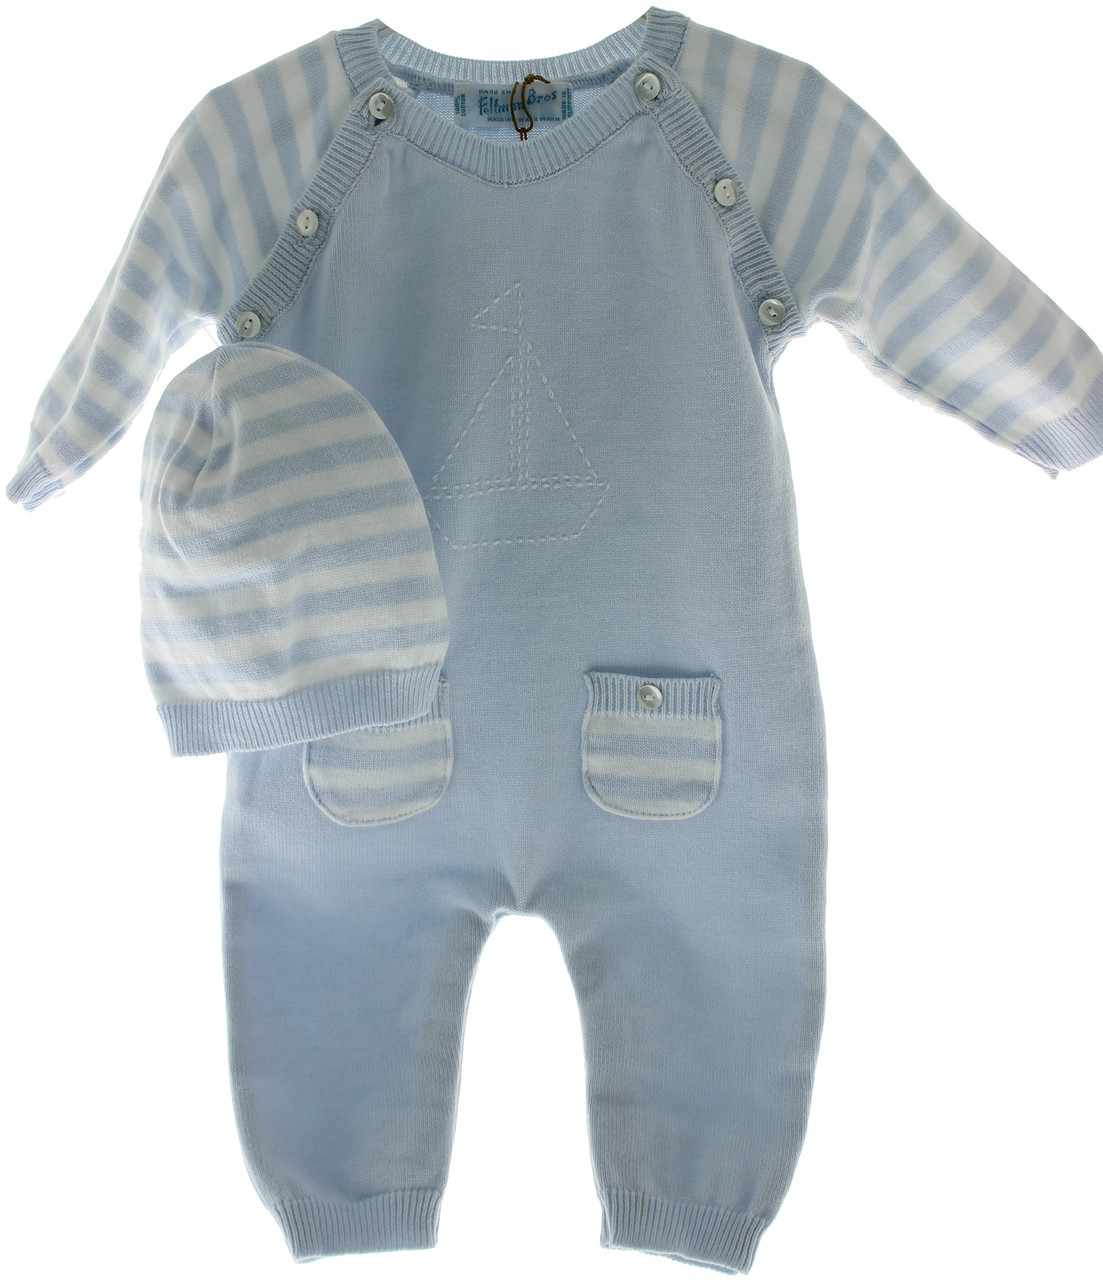 80cb1a0f7682 ... Feltman Brothers Boys Blue Knit Long Romper & Hat with Sailboat.  Loading zoom